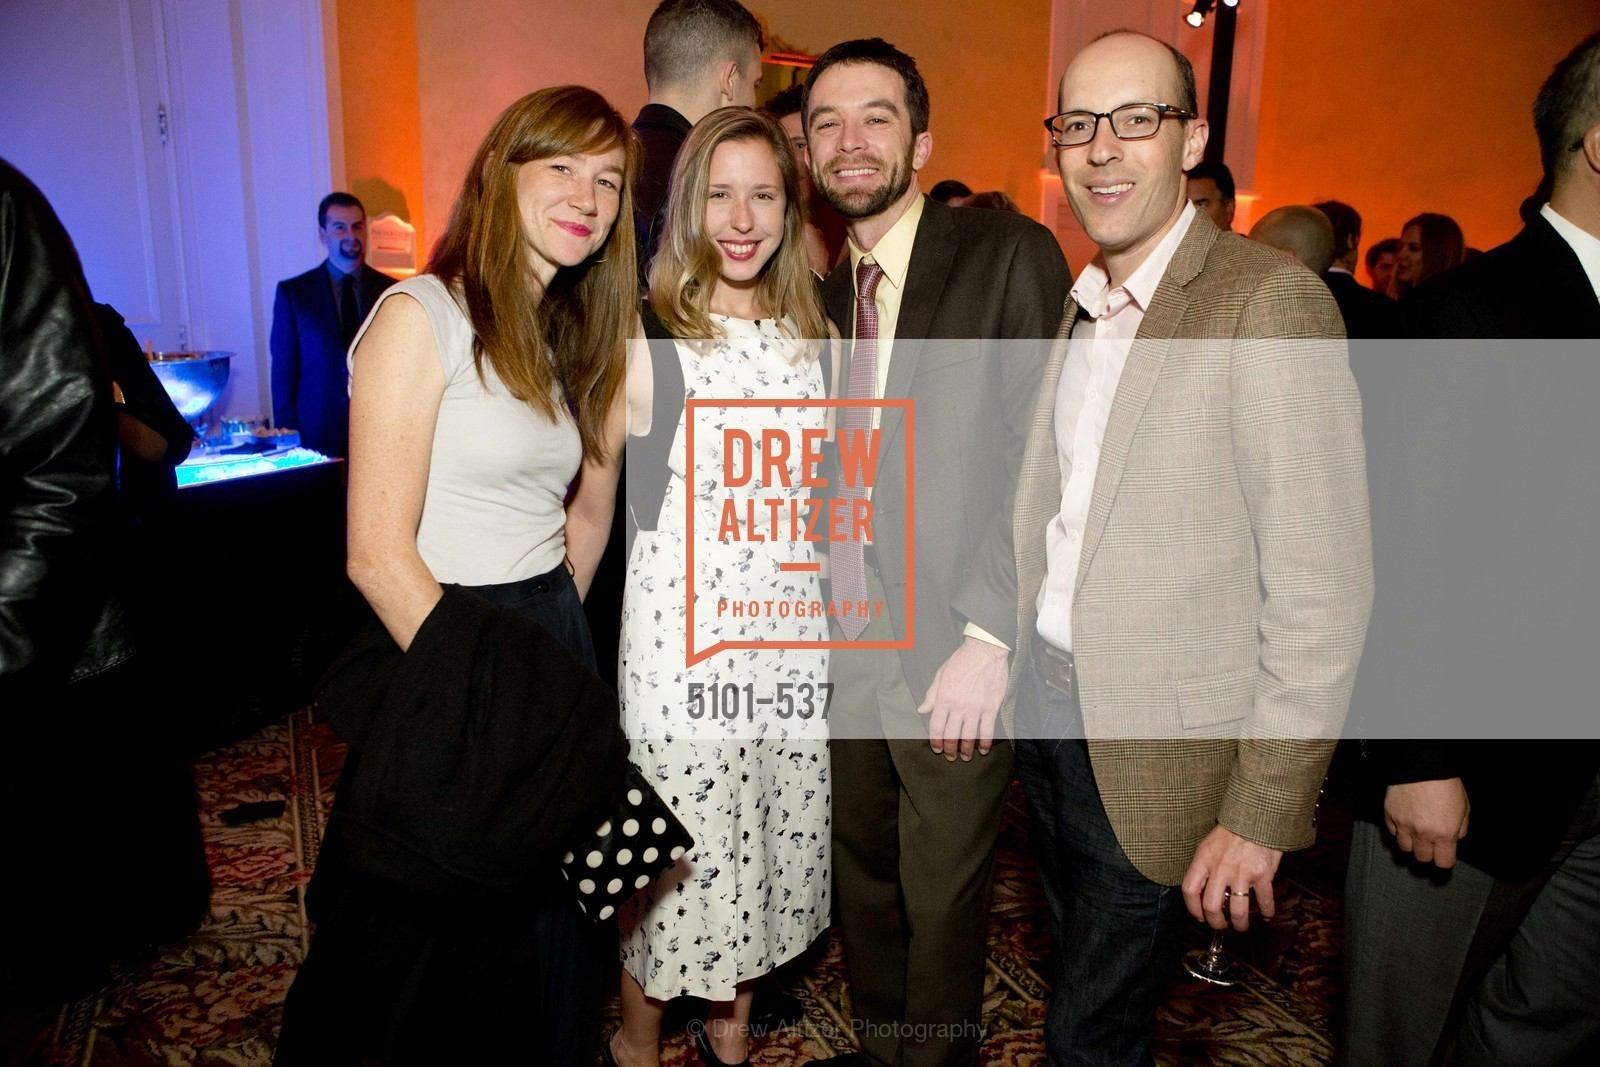 Alexis Collendine, Lauren Murrow, Tristen Arnold, John Steinbrook, TOP OF THE MARK'S 75TH Anniversary Party, US, November 7th, 2014,Drew Altizer, Drew Altizer Photography, full-service agency, private events, San Francisco photographer, photographer california